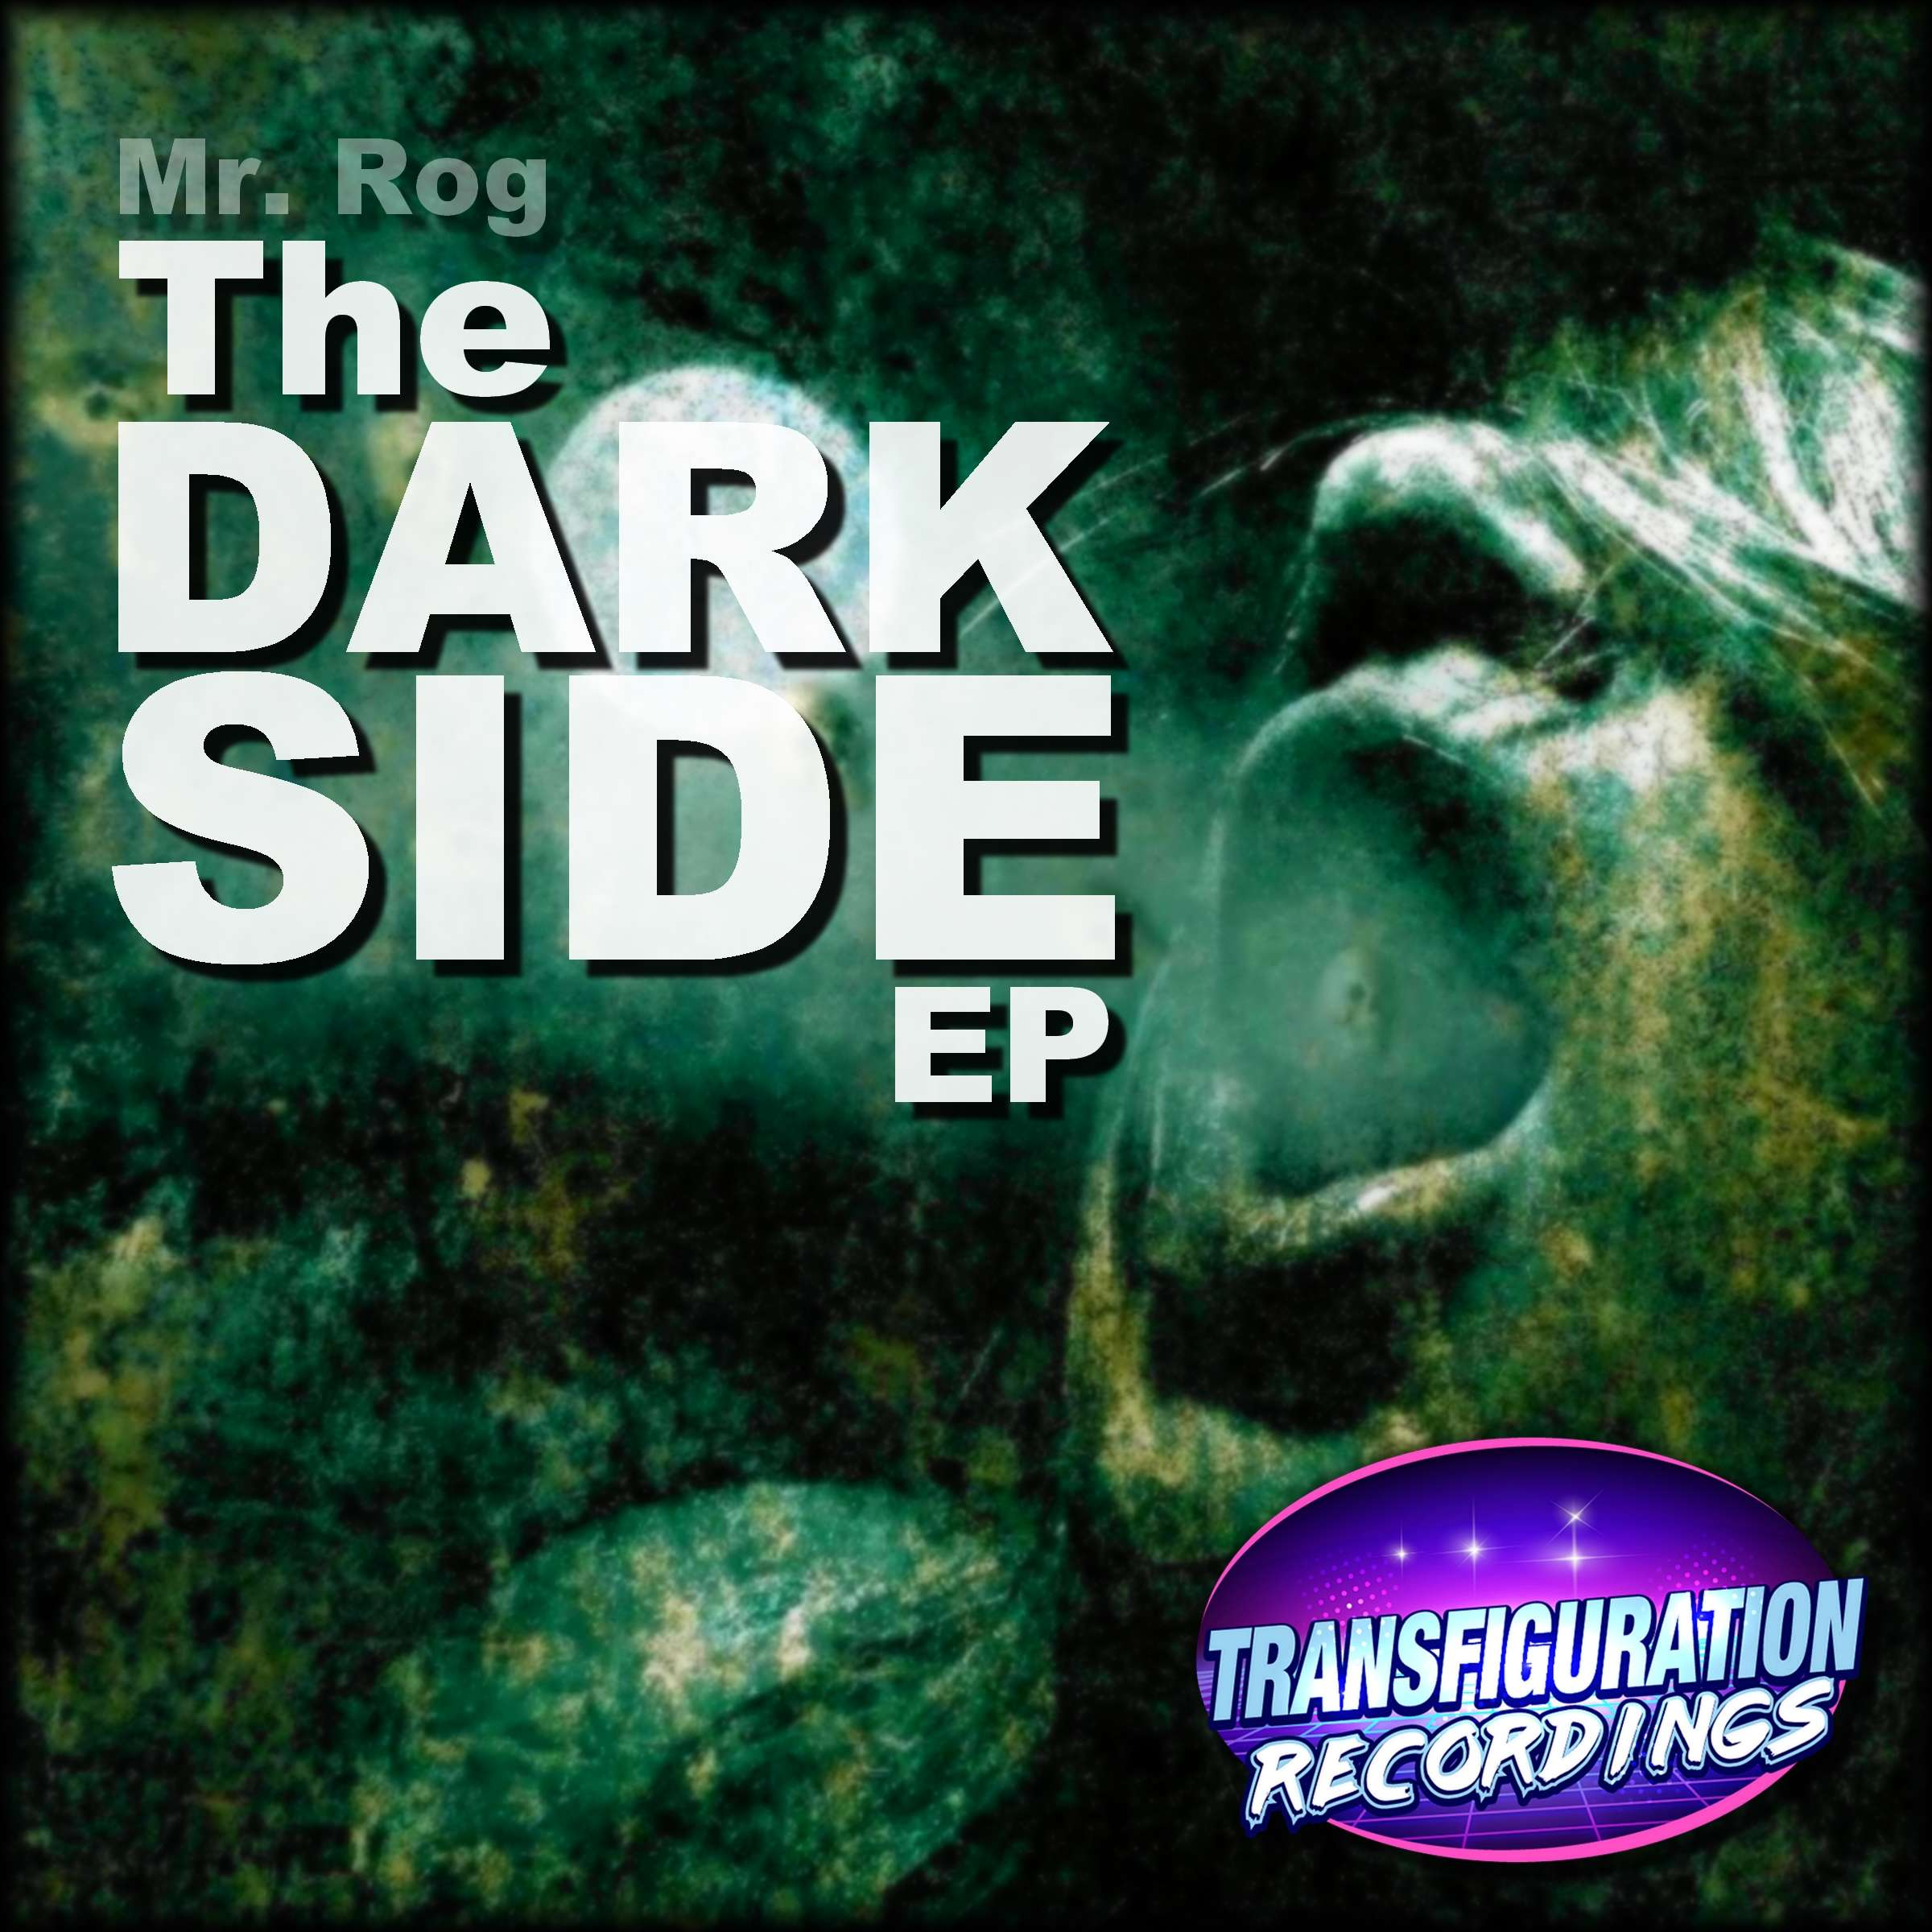 The Dark Side EP